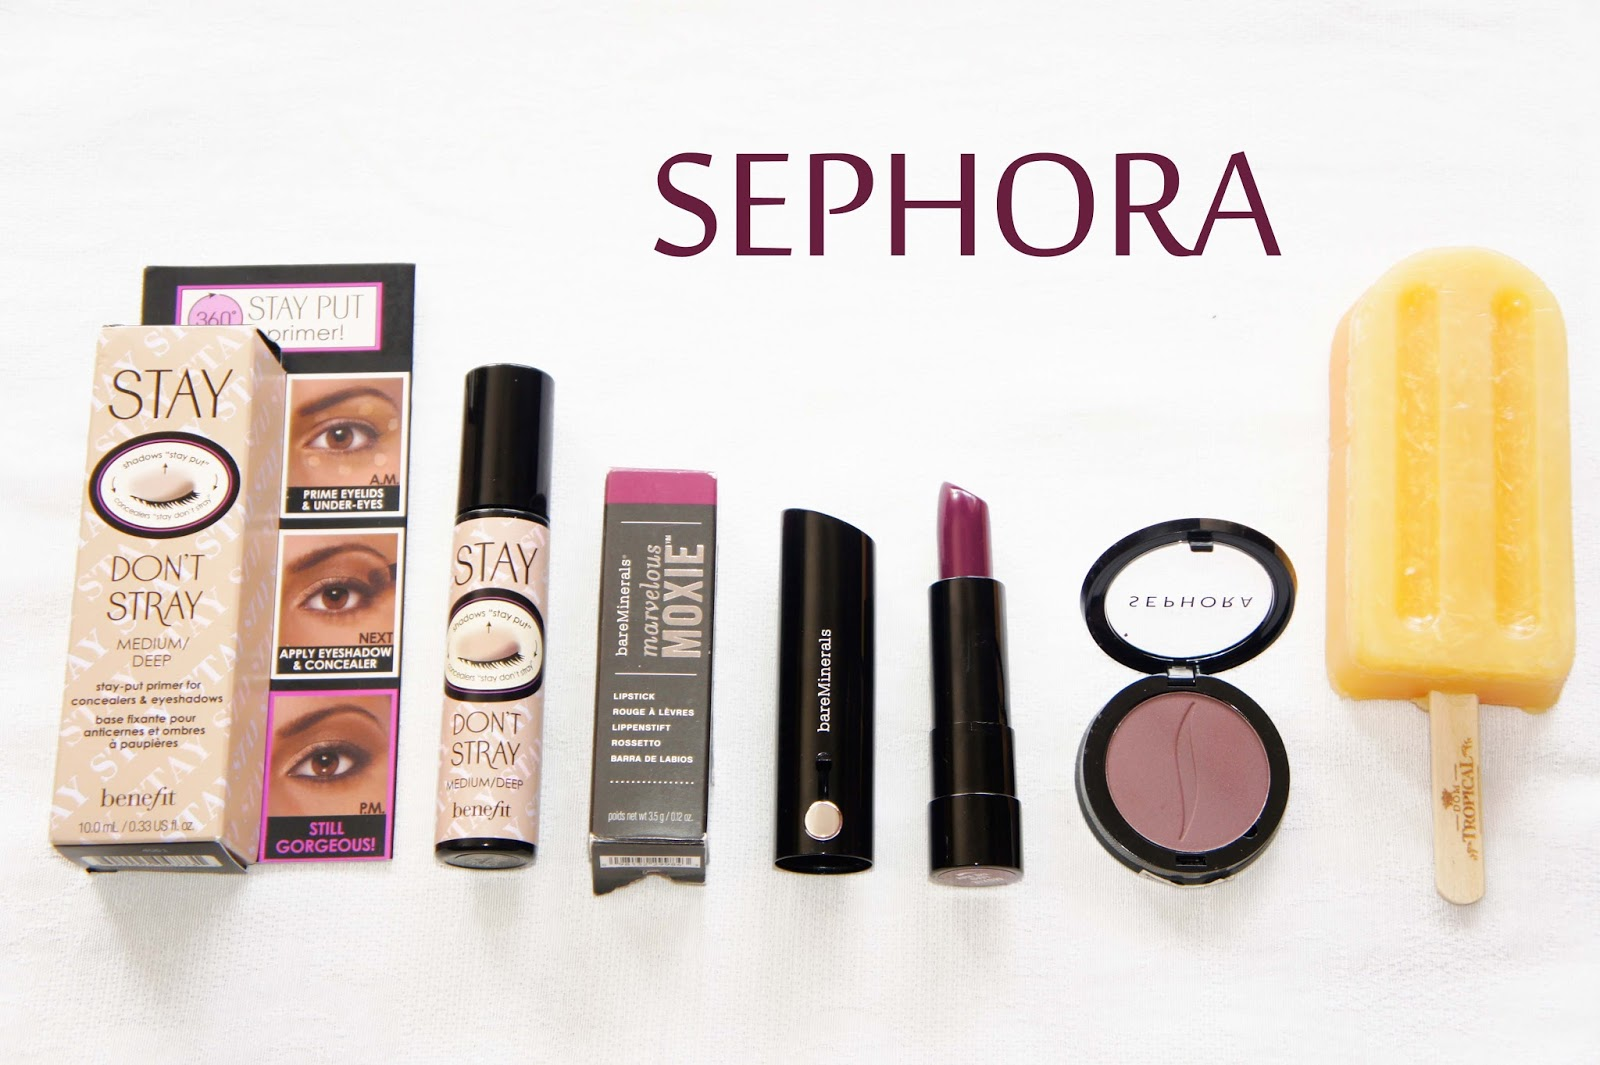 Compras en @sephora #Sephora #shopping #compras #Beauty #Brasil #beautylover #belleza #beautyblogger #bblogger #life #lifestyle #blog #bloggerlife #new #shop #benefit #staydontstray #bareminerals #DomTropical #soap #mango #makeup #makeuplover #beautylover